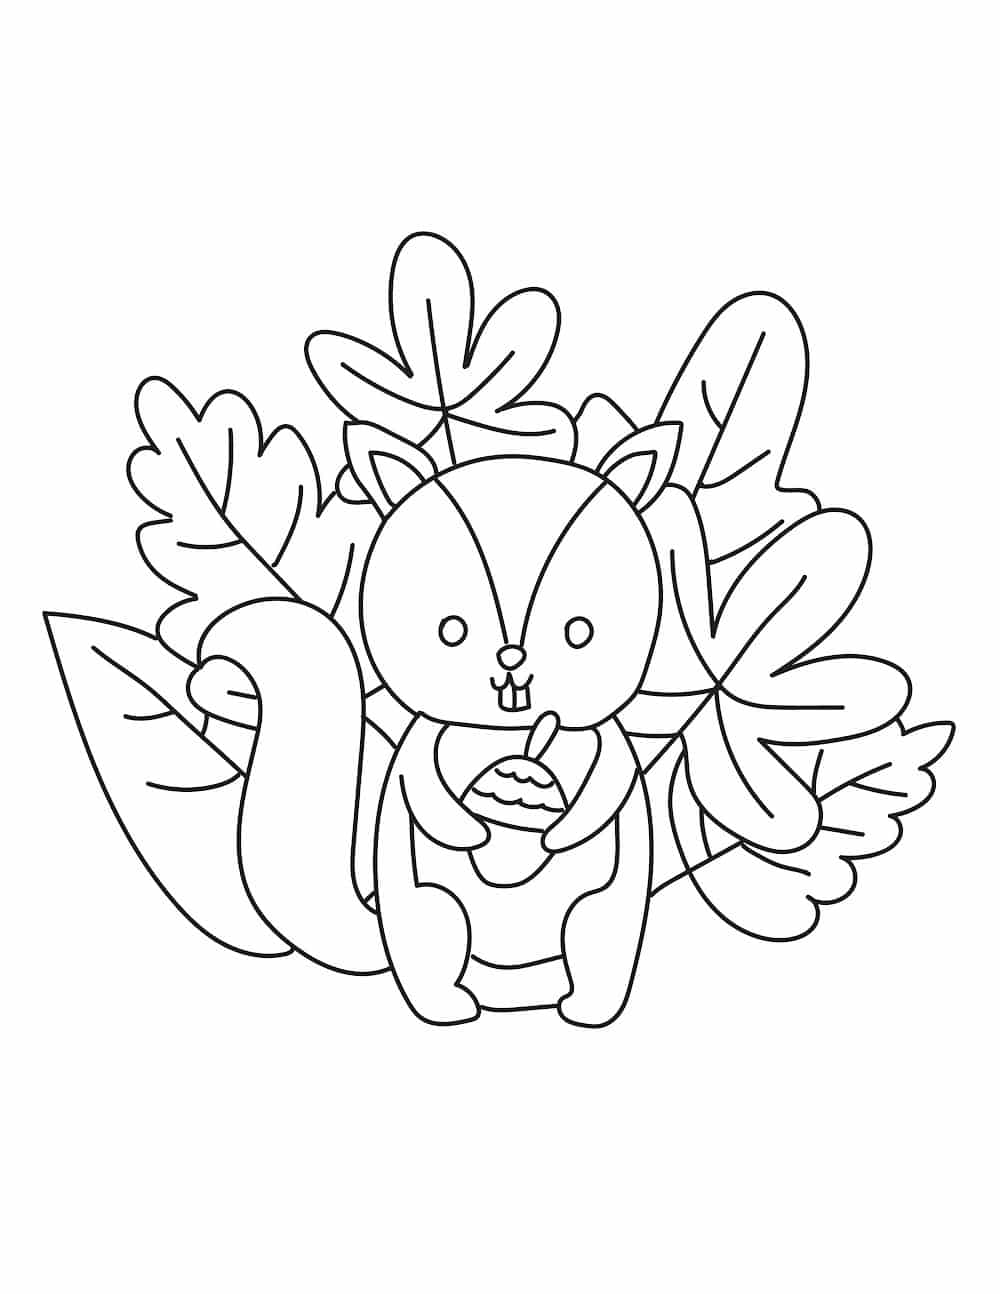 These free printable fall leaves coloring pages for kids feature a cute critter as well as leaves, so your kid can use all those bright crayons!